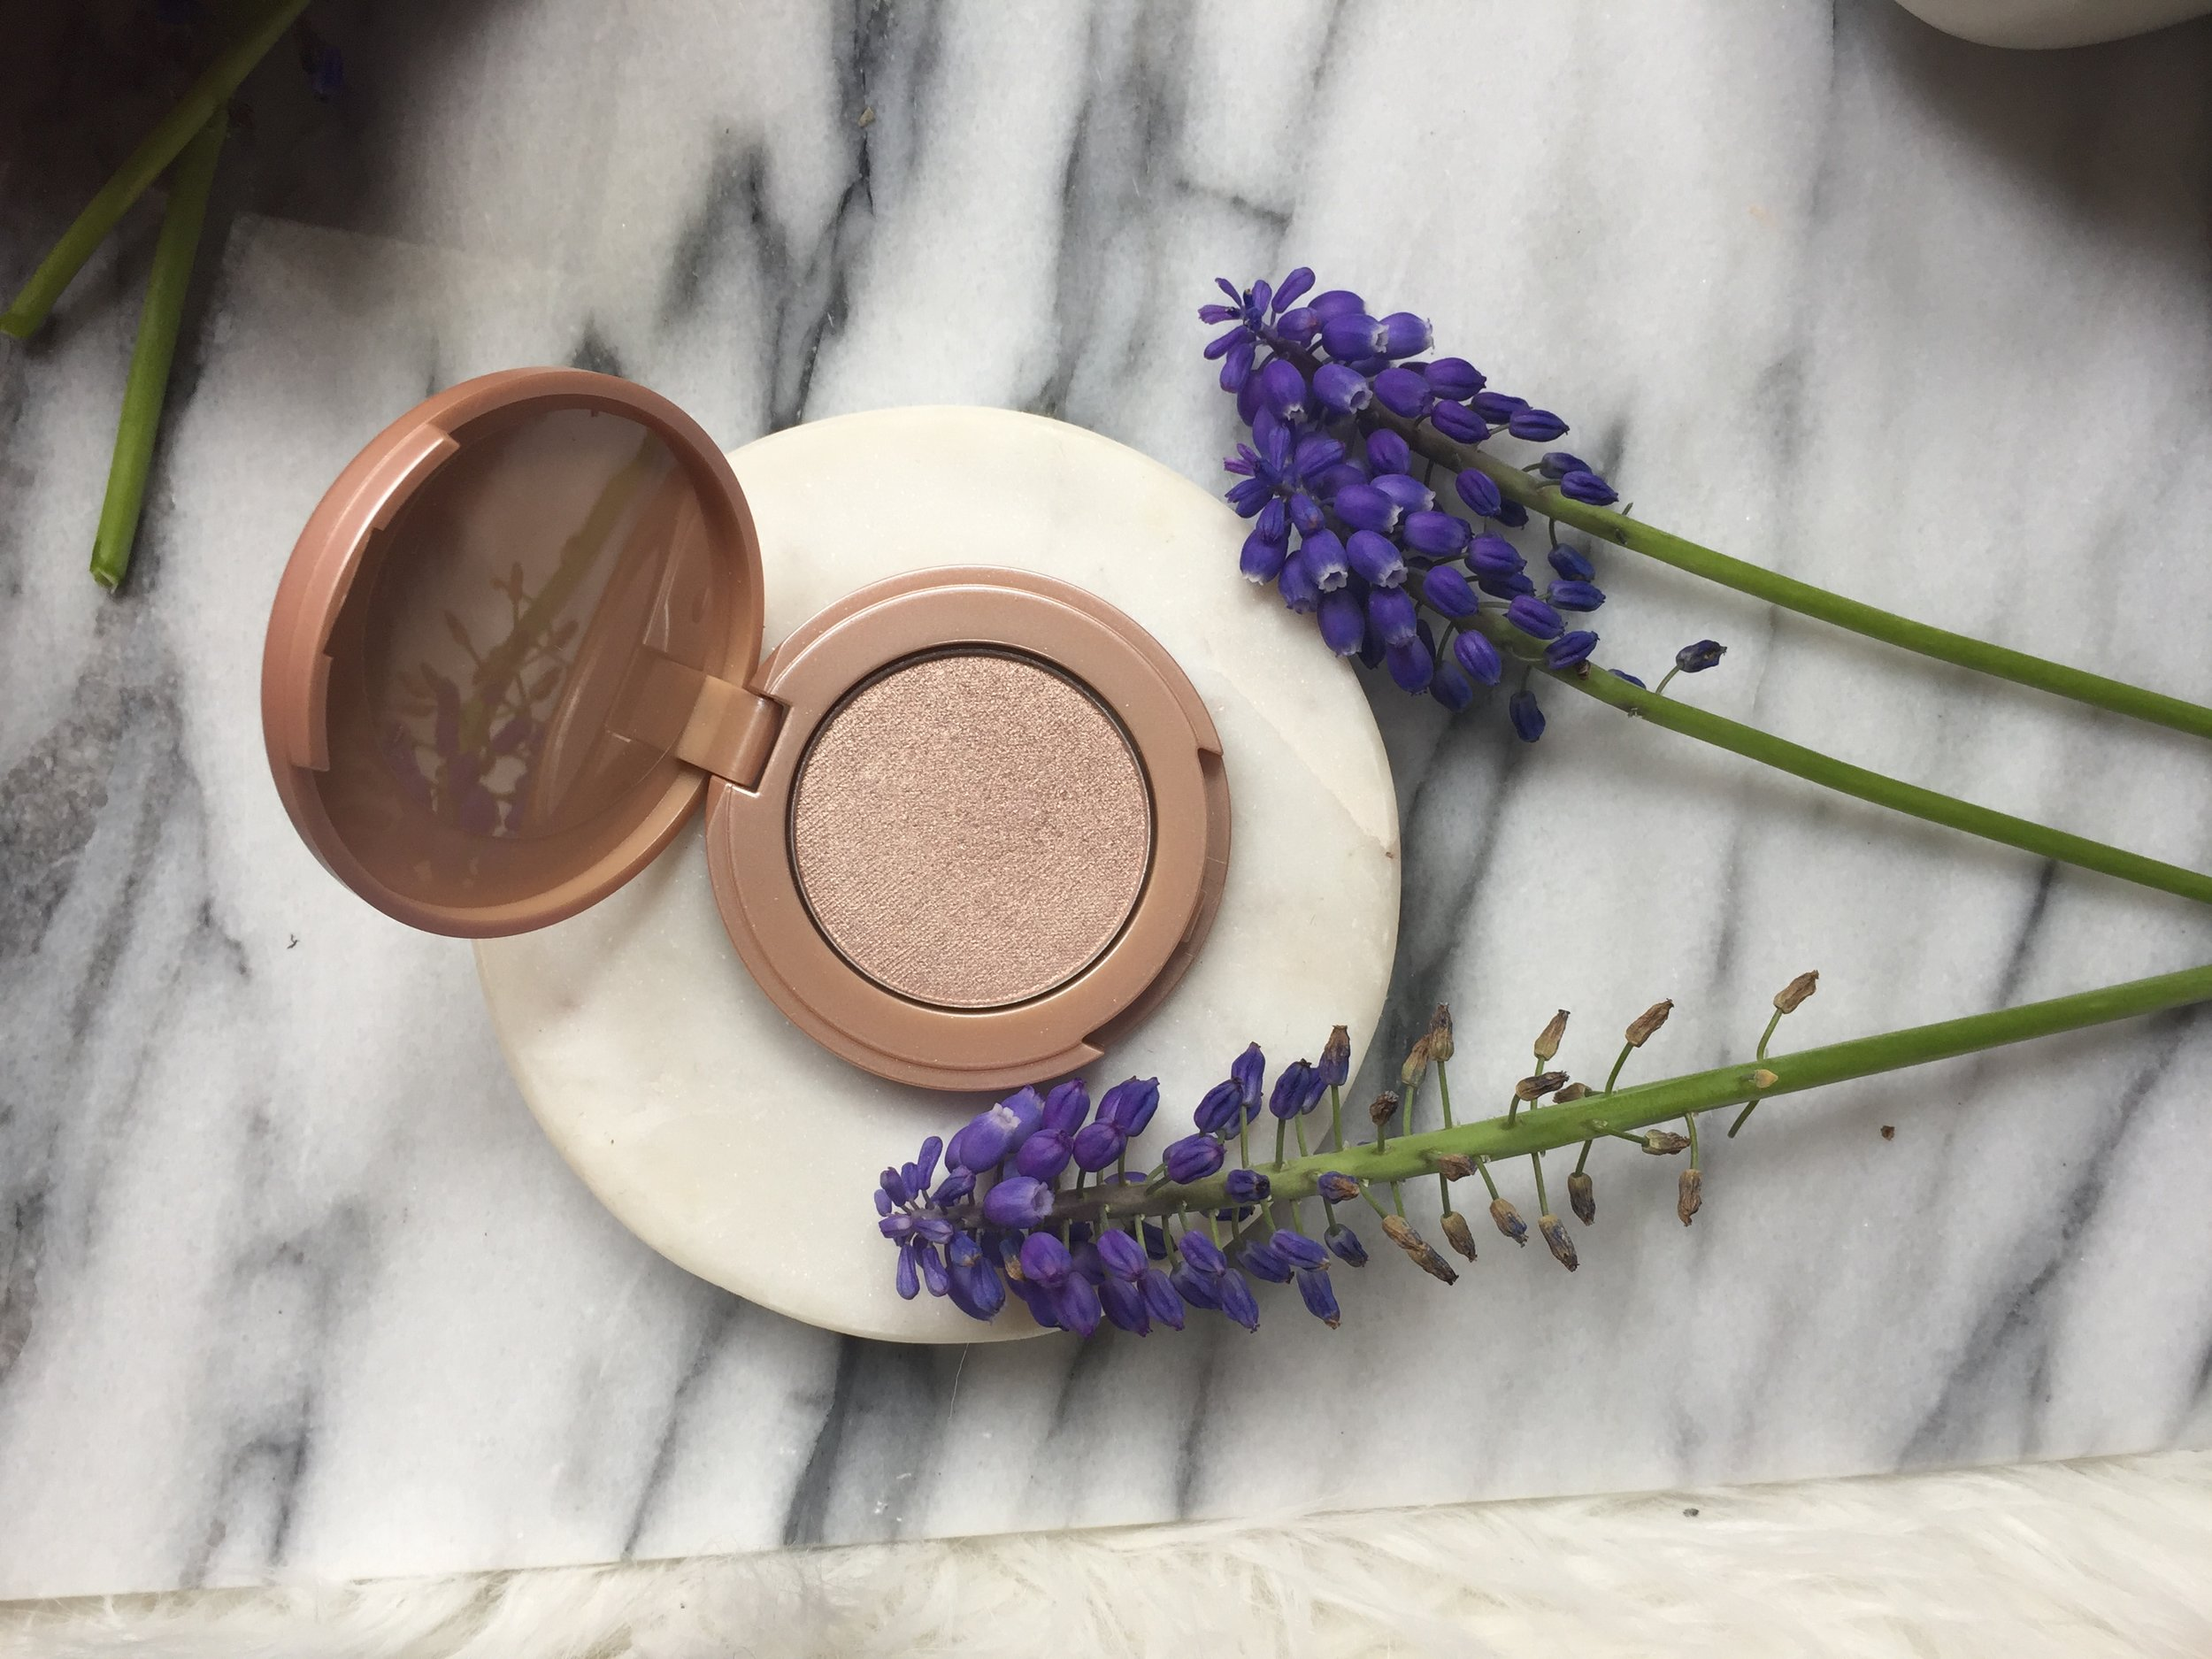 Tarte Highlighter in Scandal